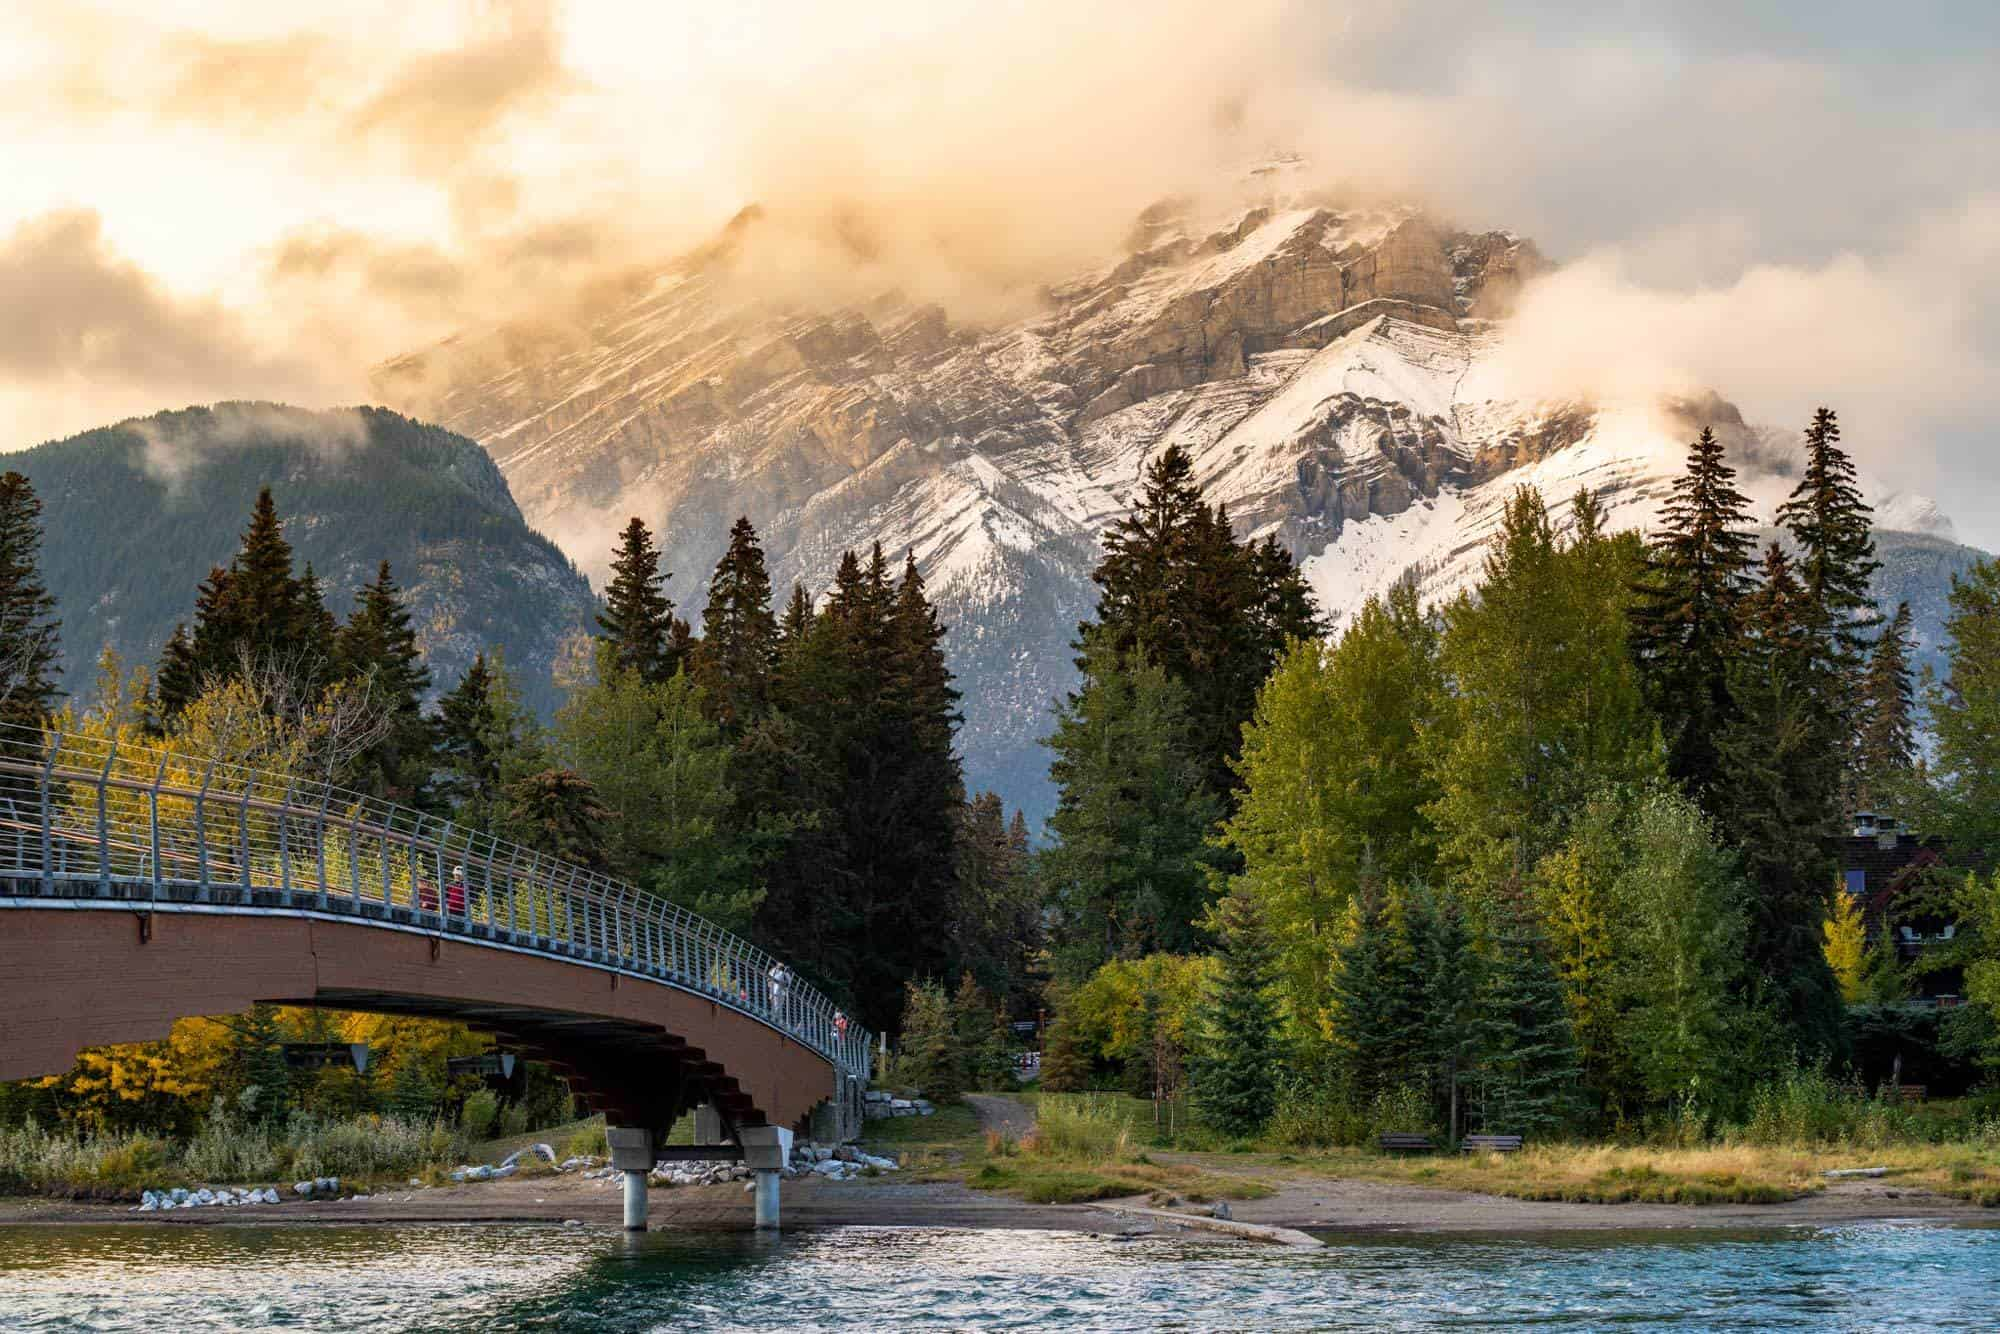 19 AWESOME Things to Do in Banff, Canada (Epic 2021 Guide) – NOMADasaurus Adventure Travel Blog